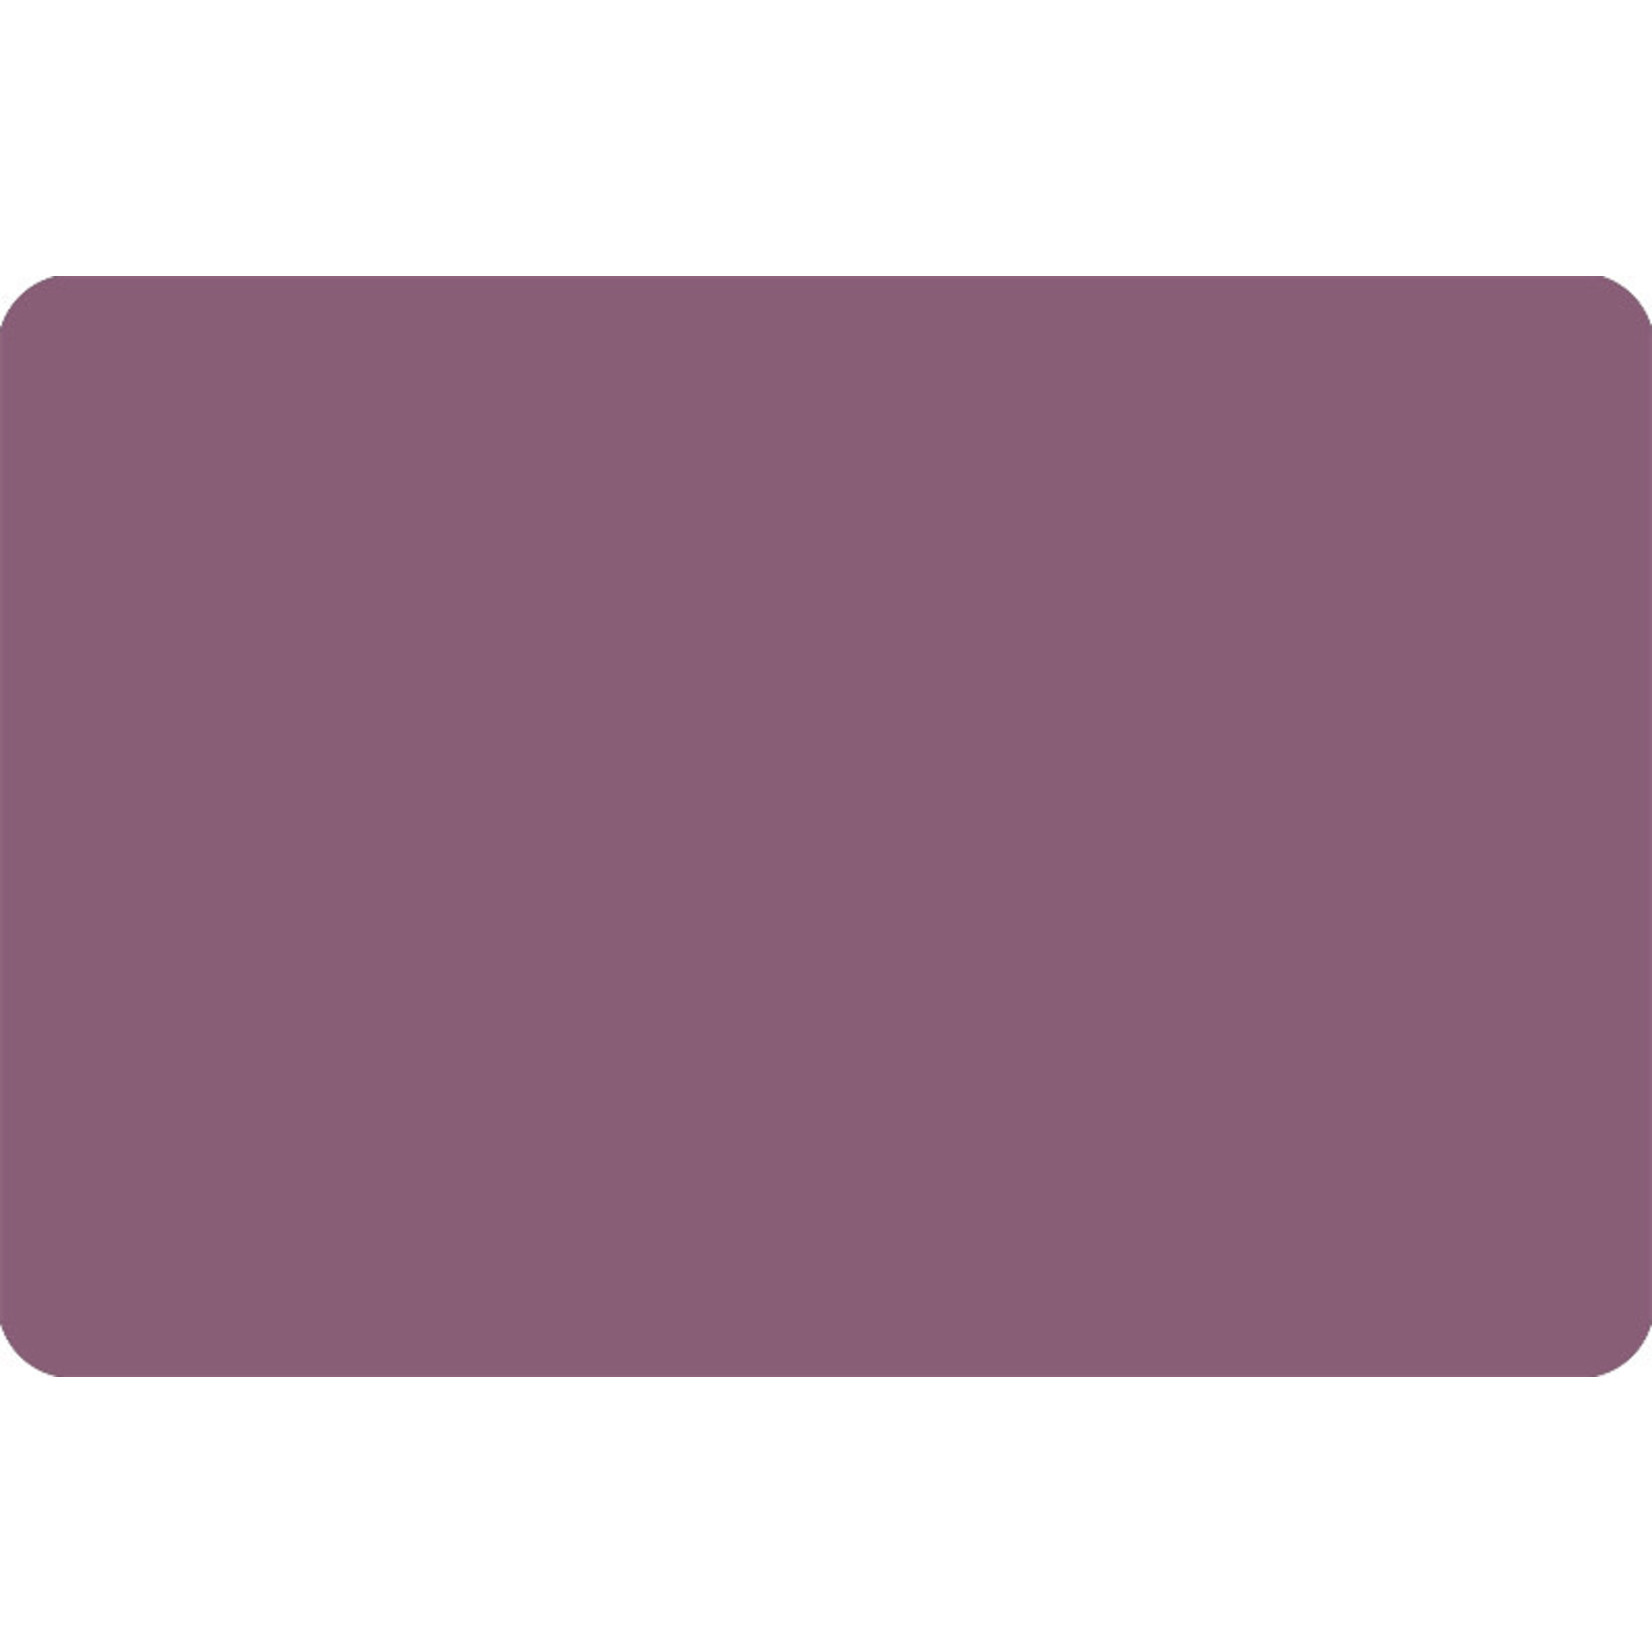 """Shannon Fabrics Minky, Extra Wide Solid Cuddle3, 90"""" WineBerry, (by the inch)"""